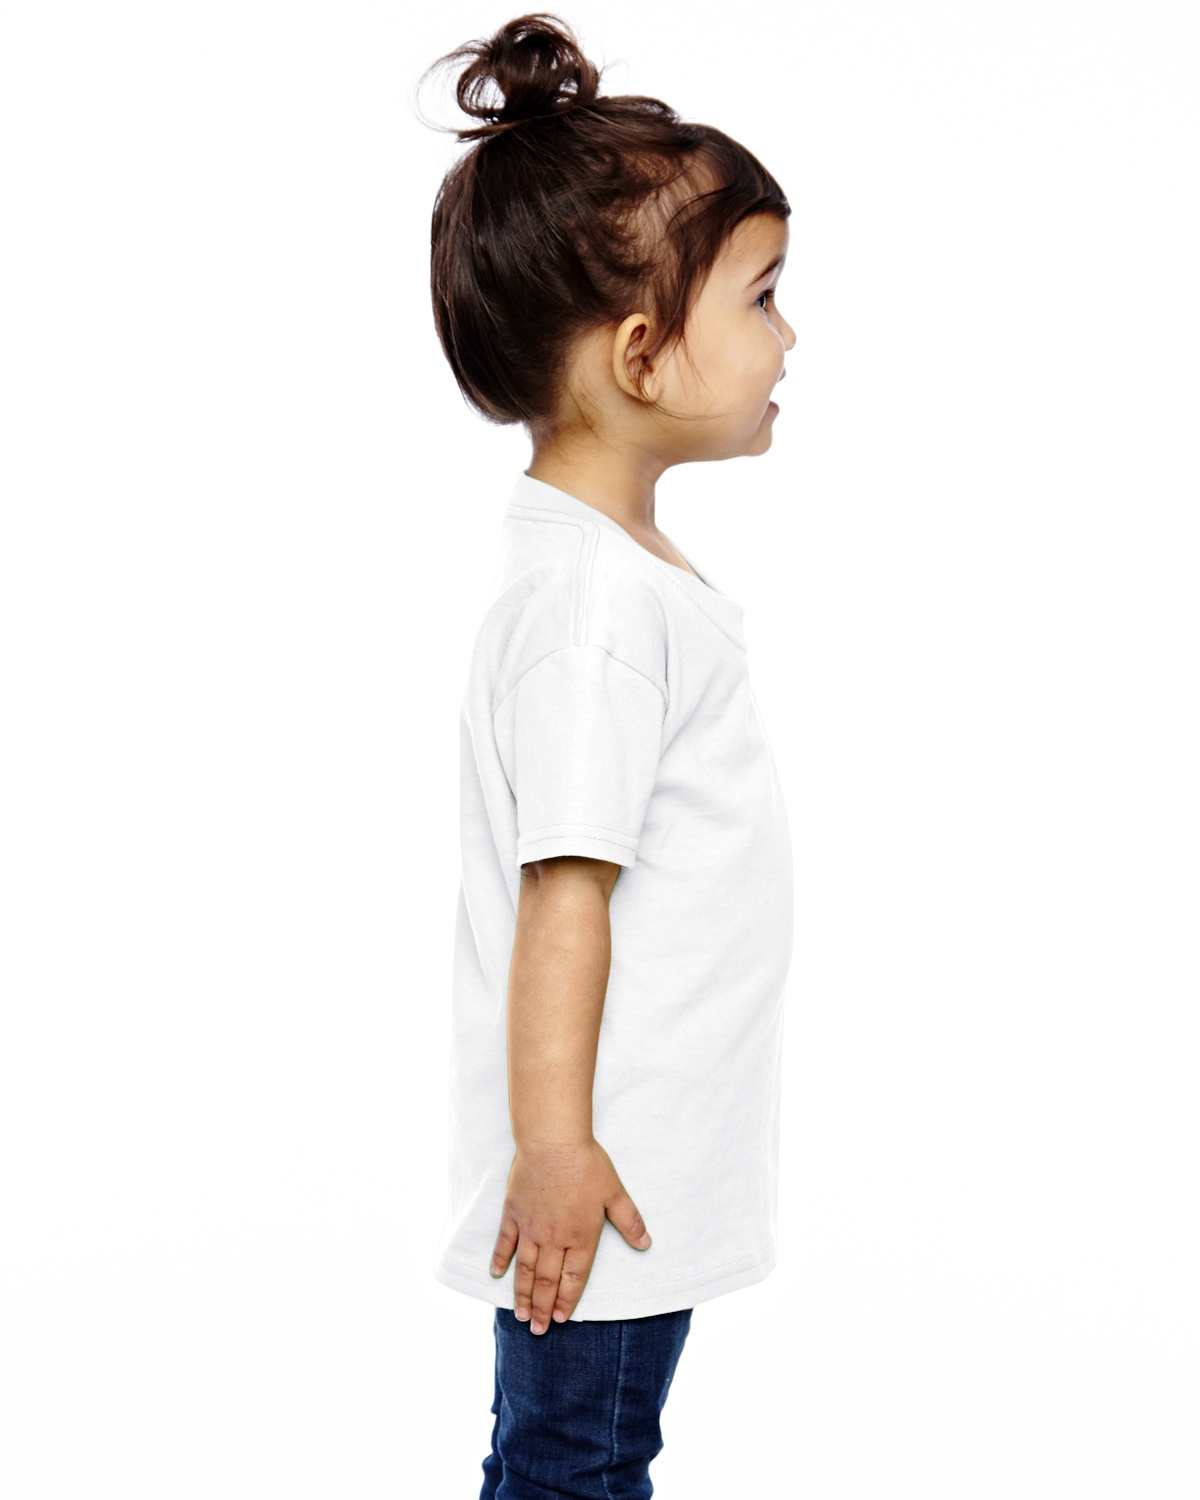 'Fruit of the Loom T3930 Toddler HD Cotton T-Shirt'